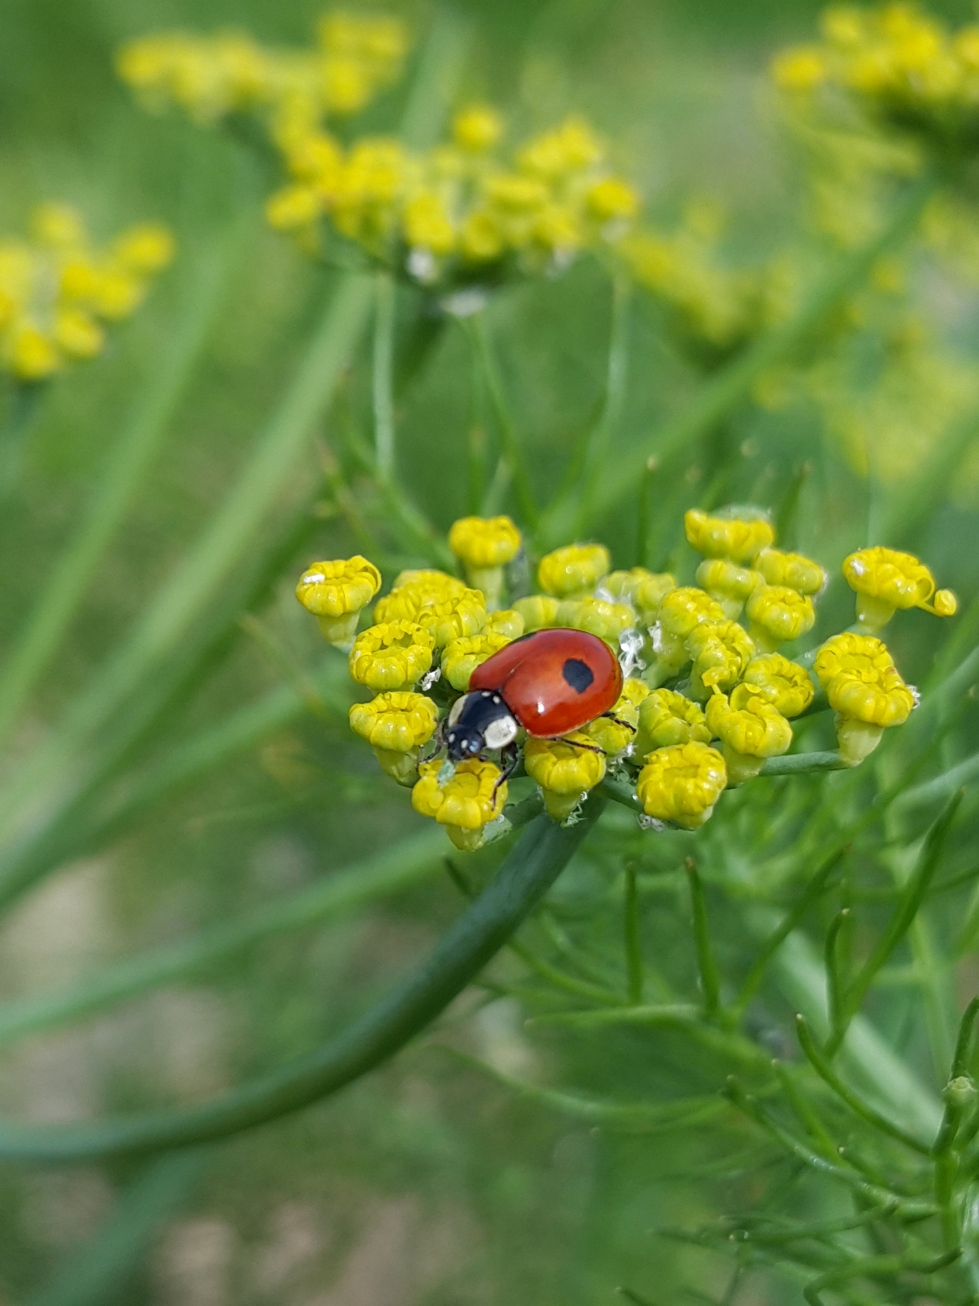 I would happily have loads of ladybirds in my garden